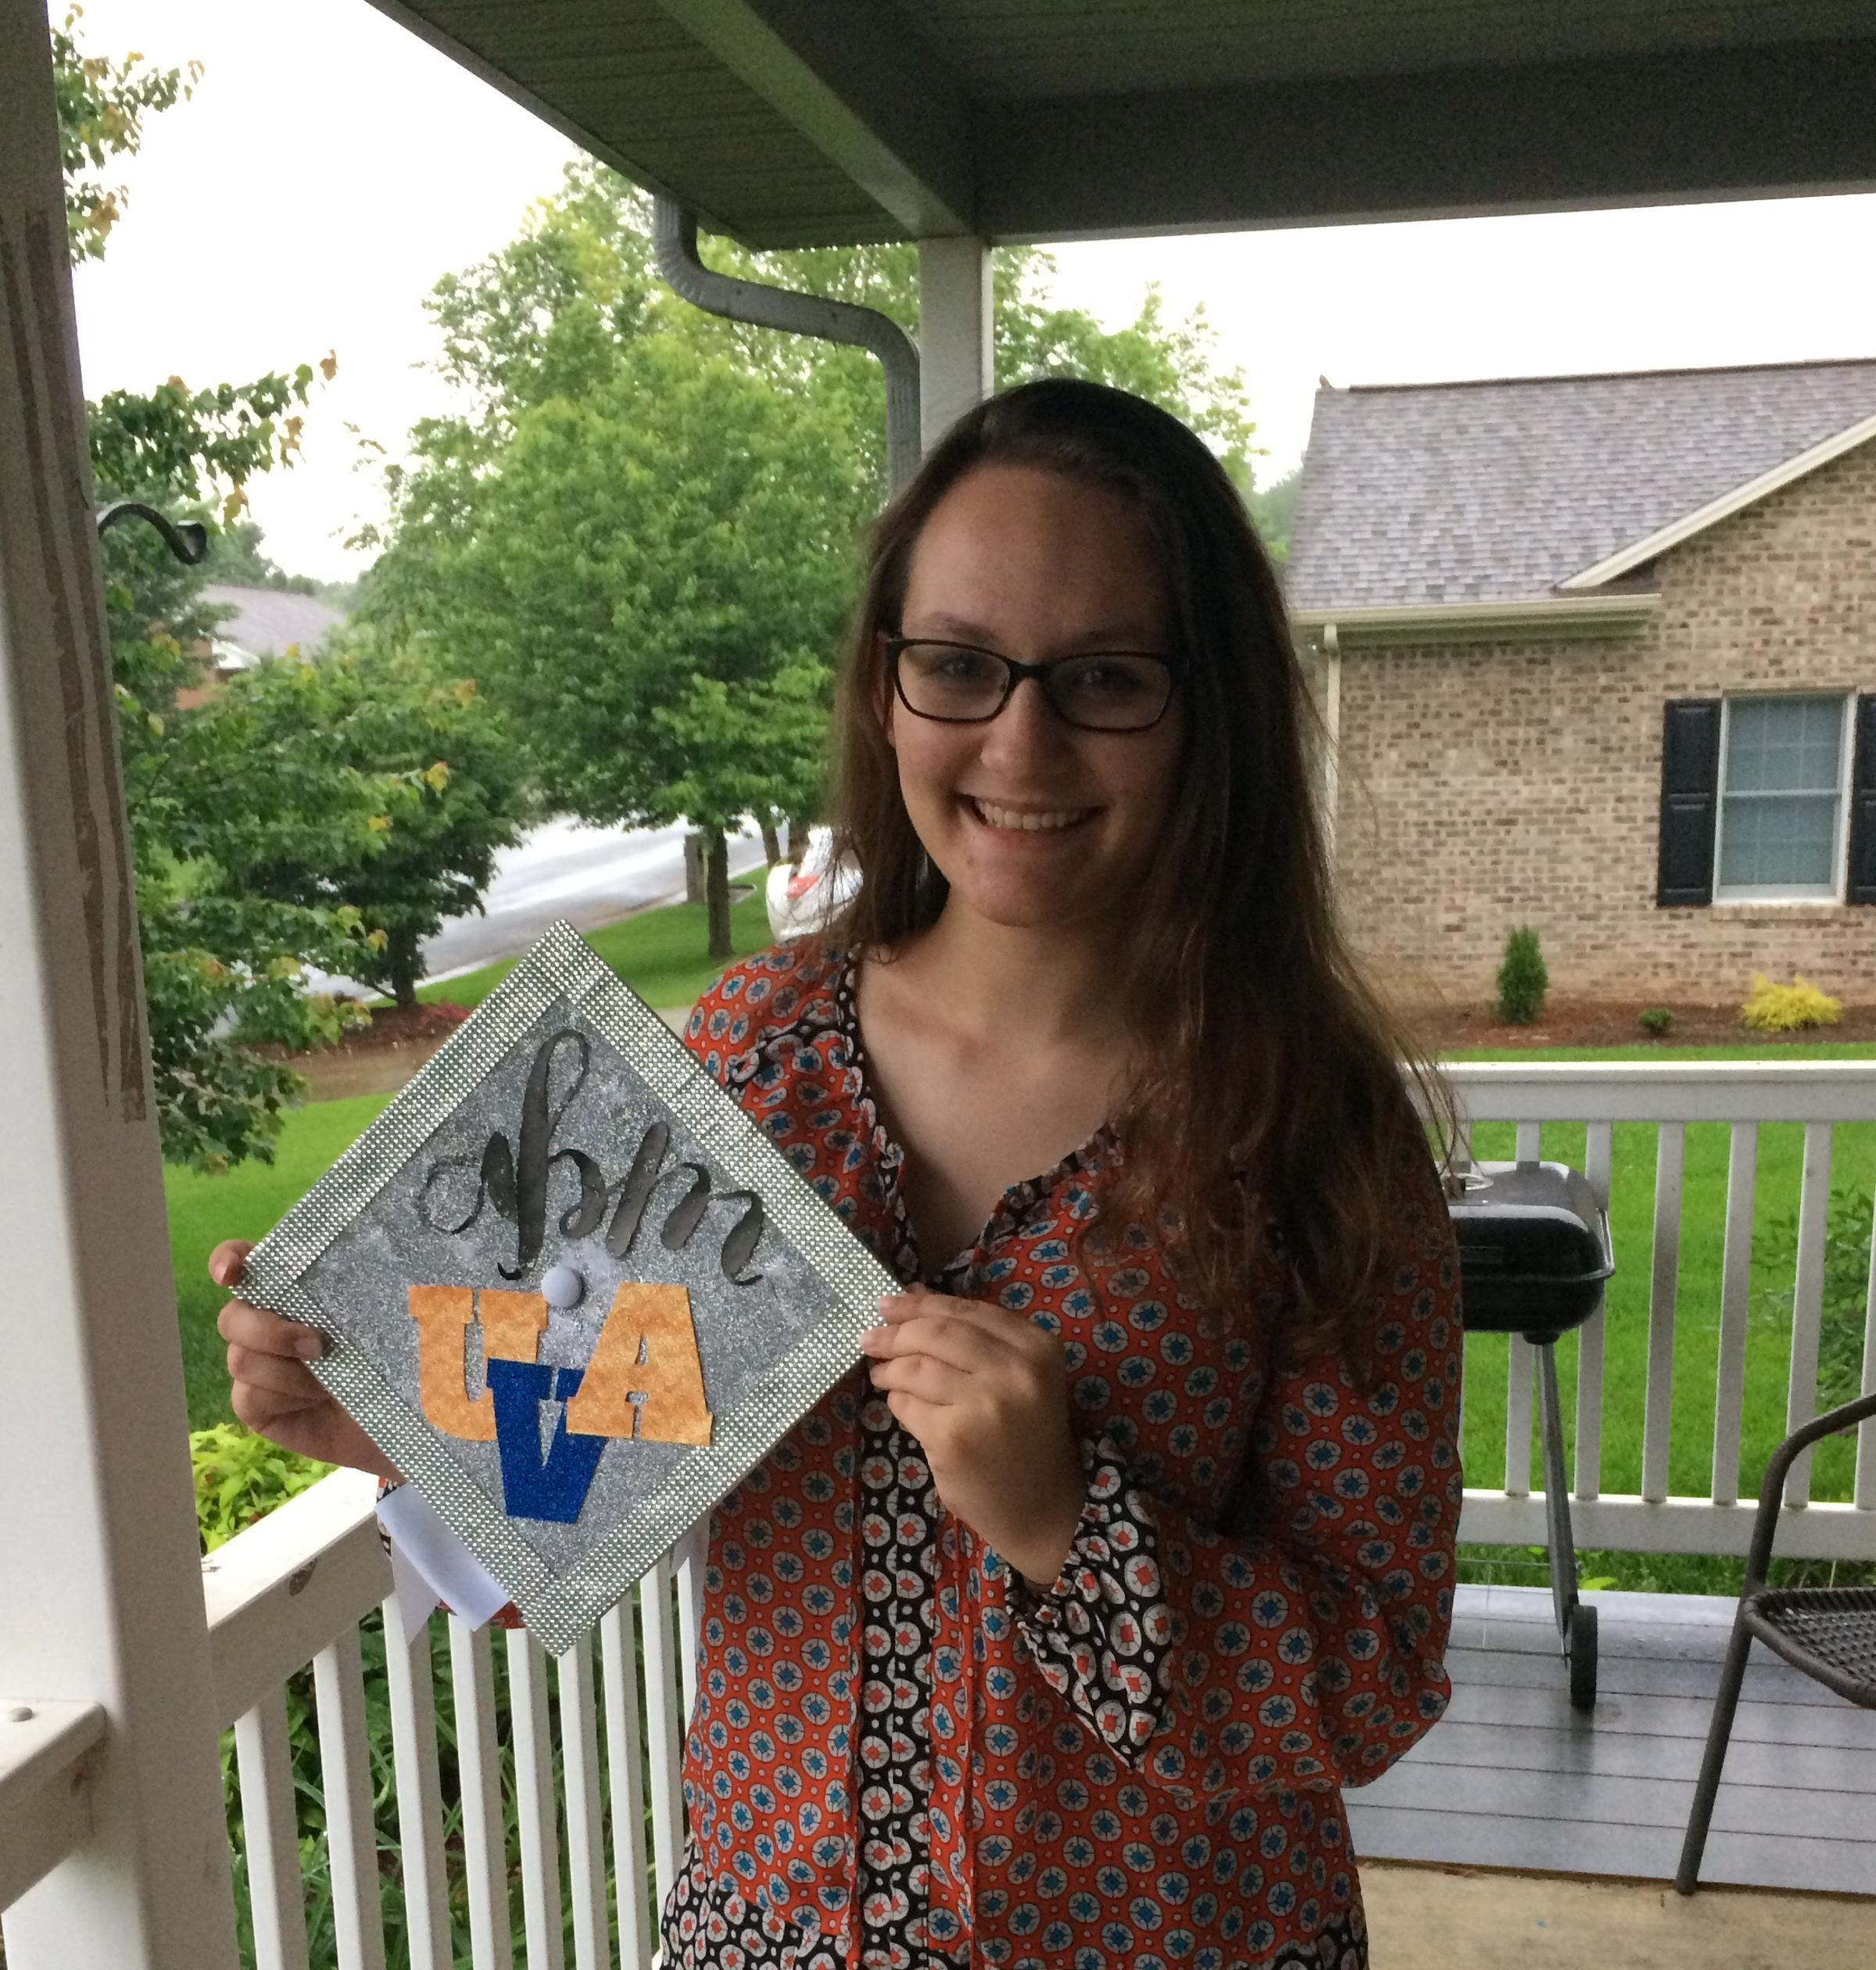 Recycling Graduation Caps and Gowns | WVTF